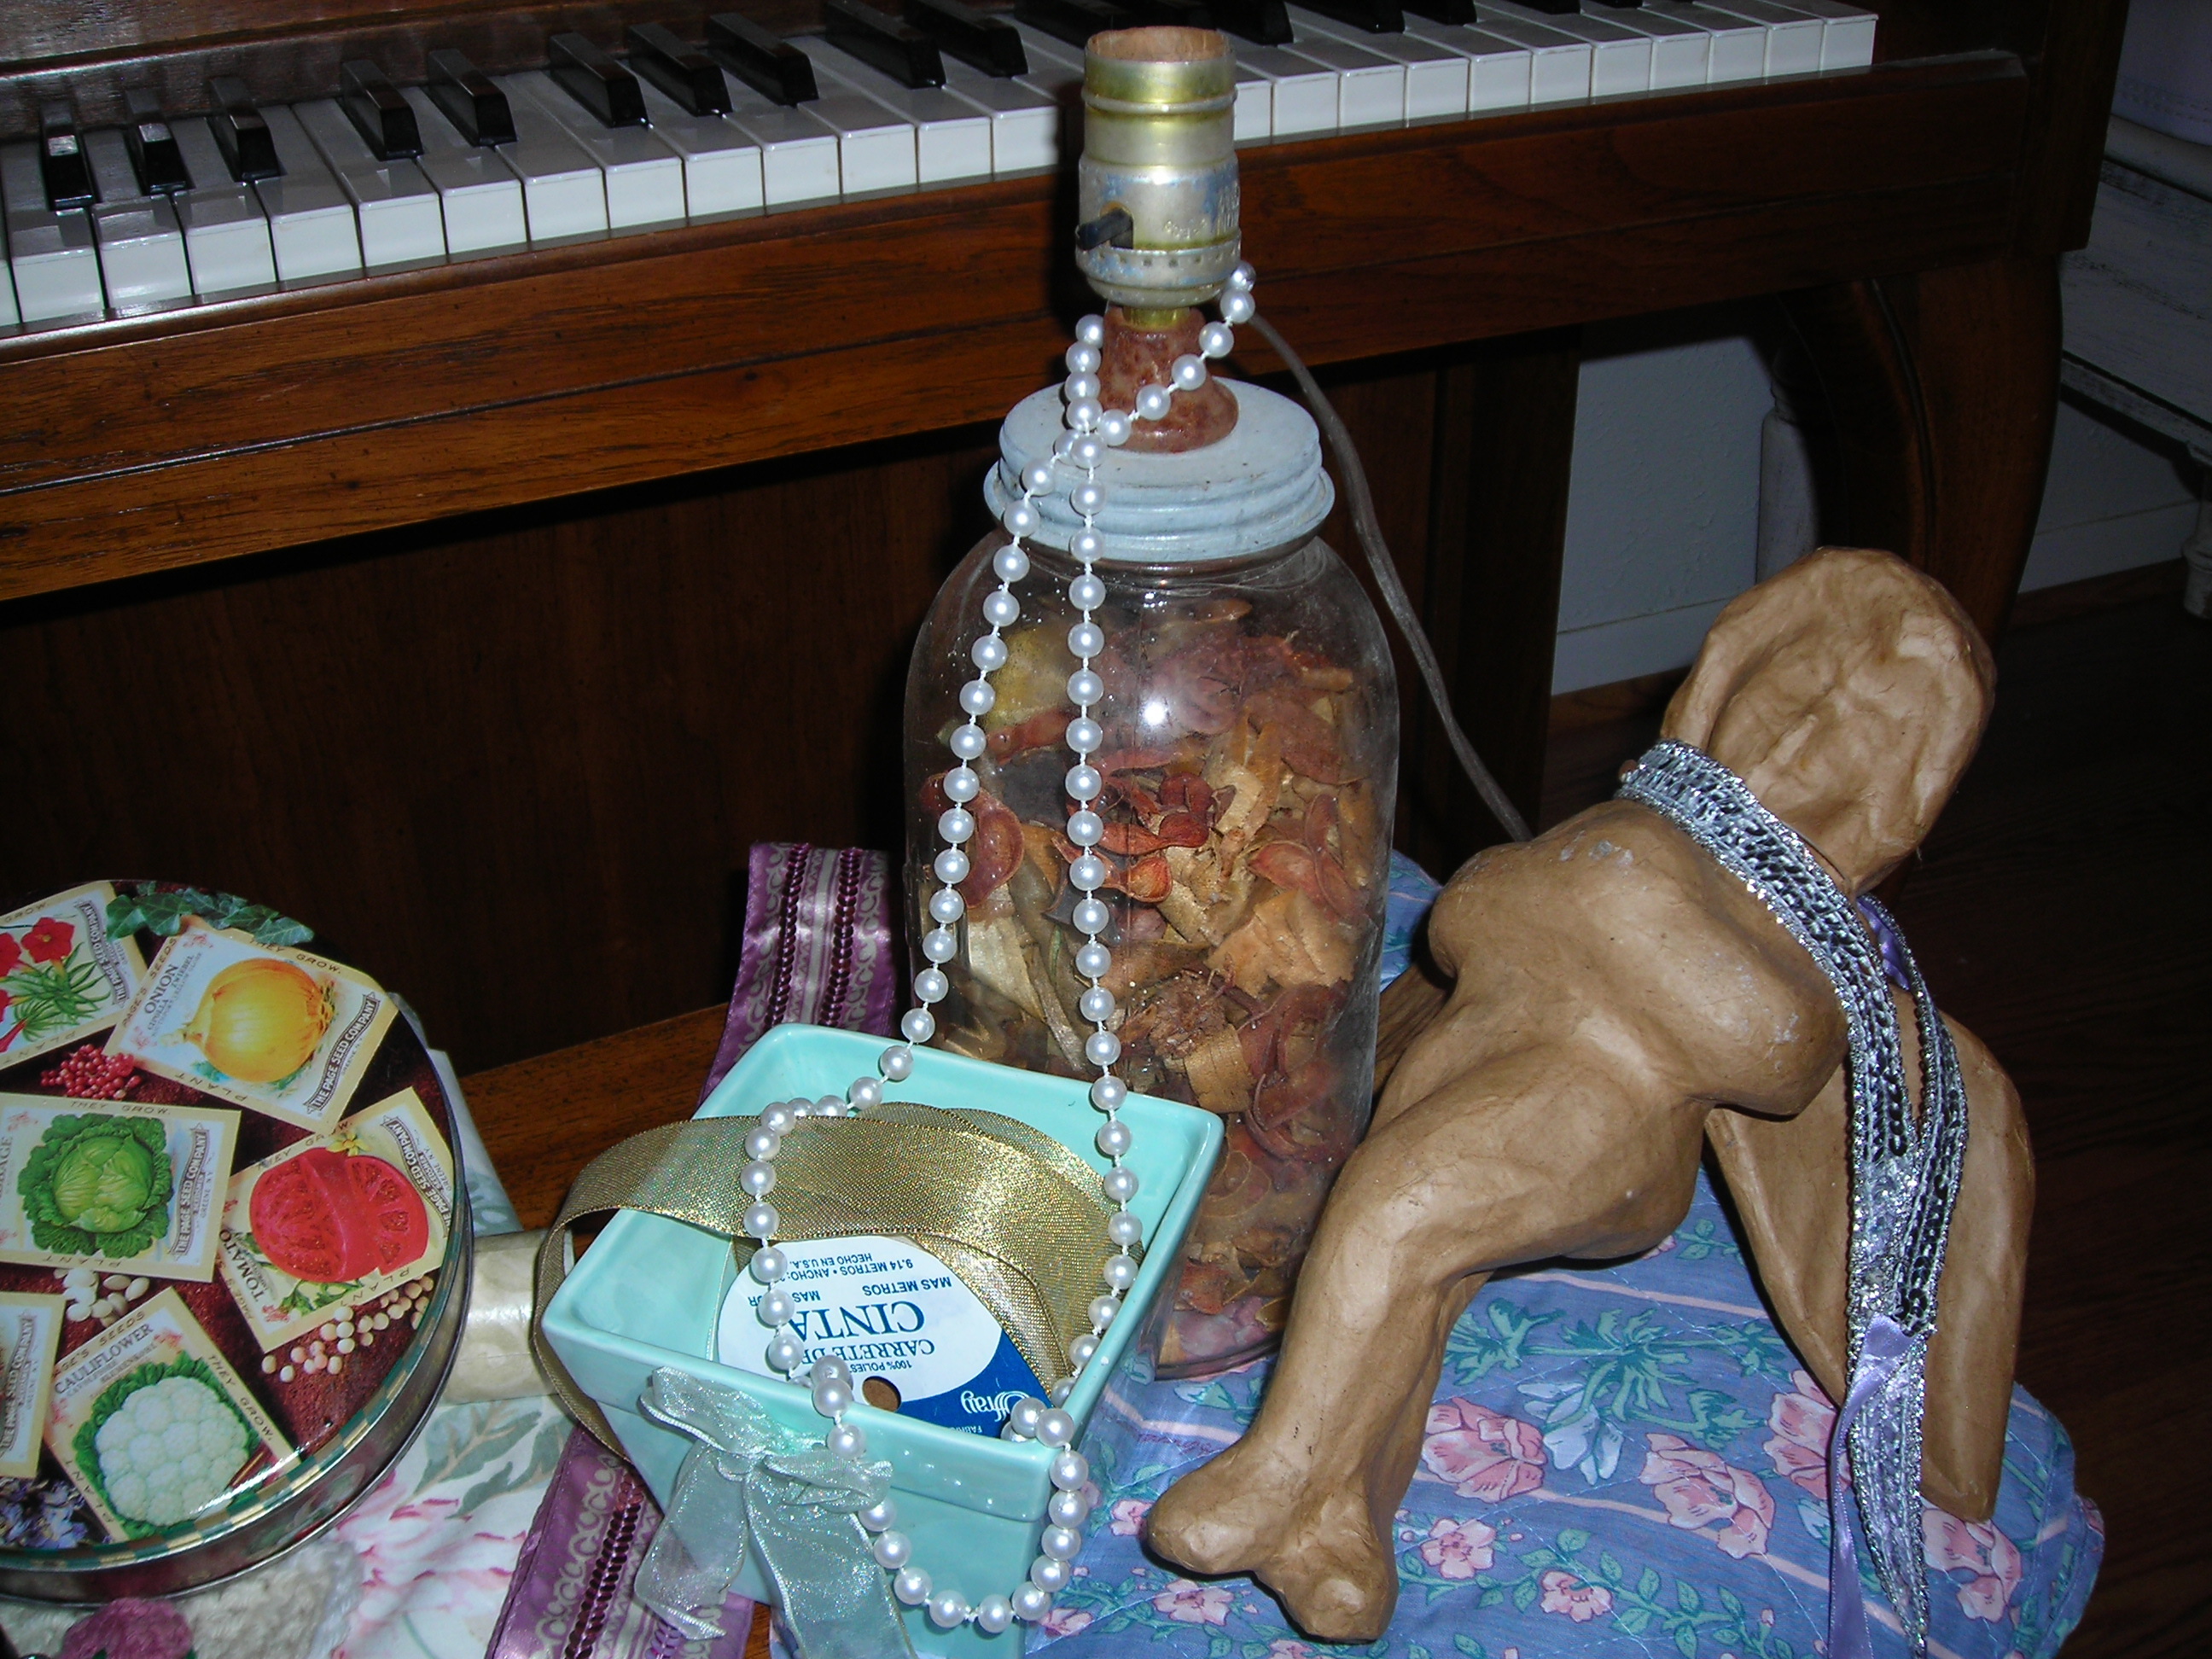 Note the old jar lamp ... will tosss the pot pourri and put something cute inside!